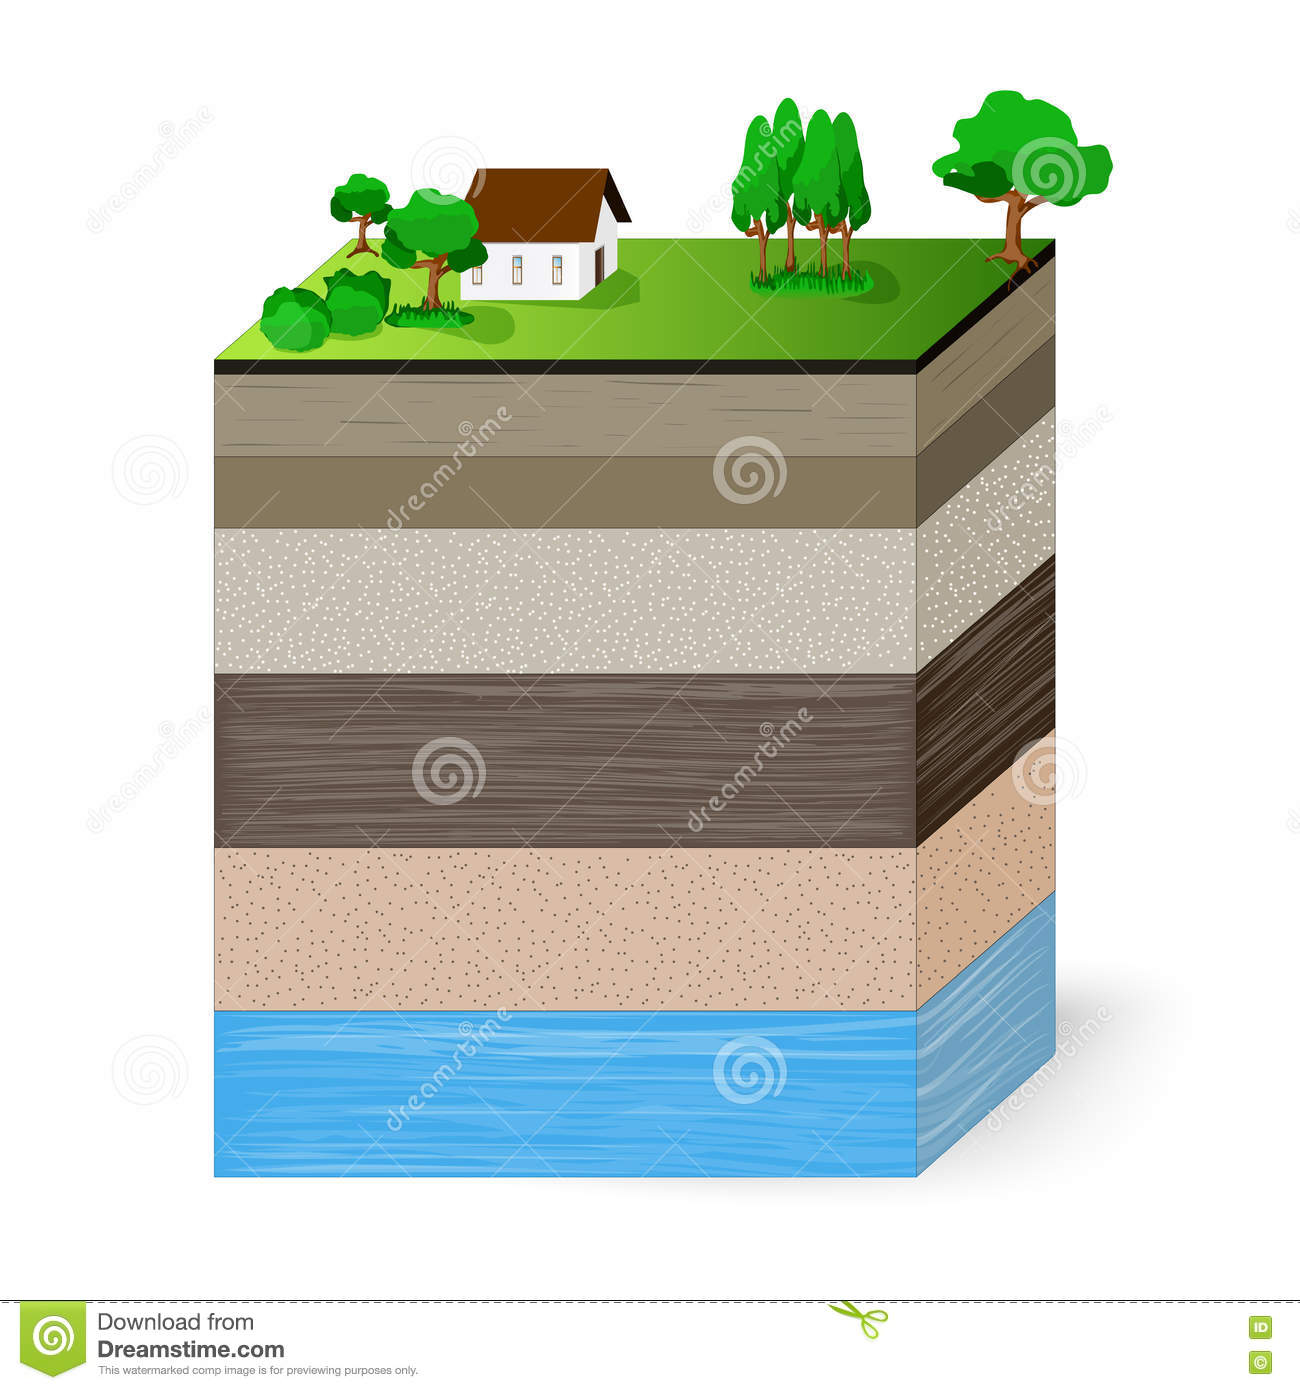 soil layers diagram s video cable groundwater cartoons illustrations and vector stock images